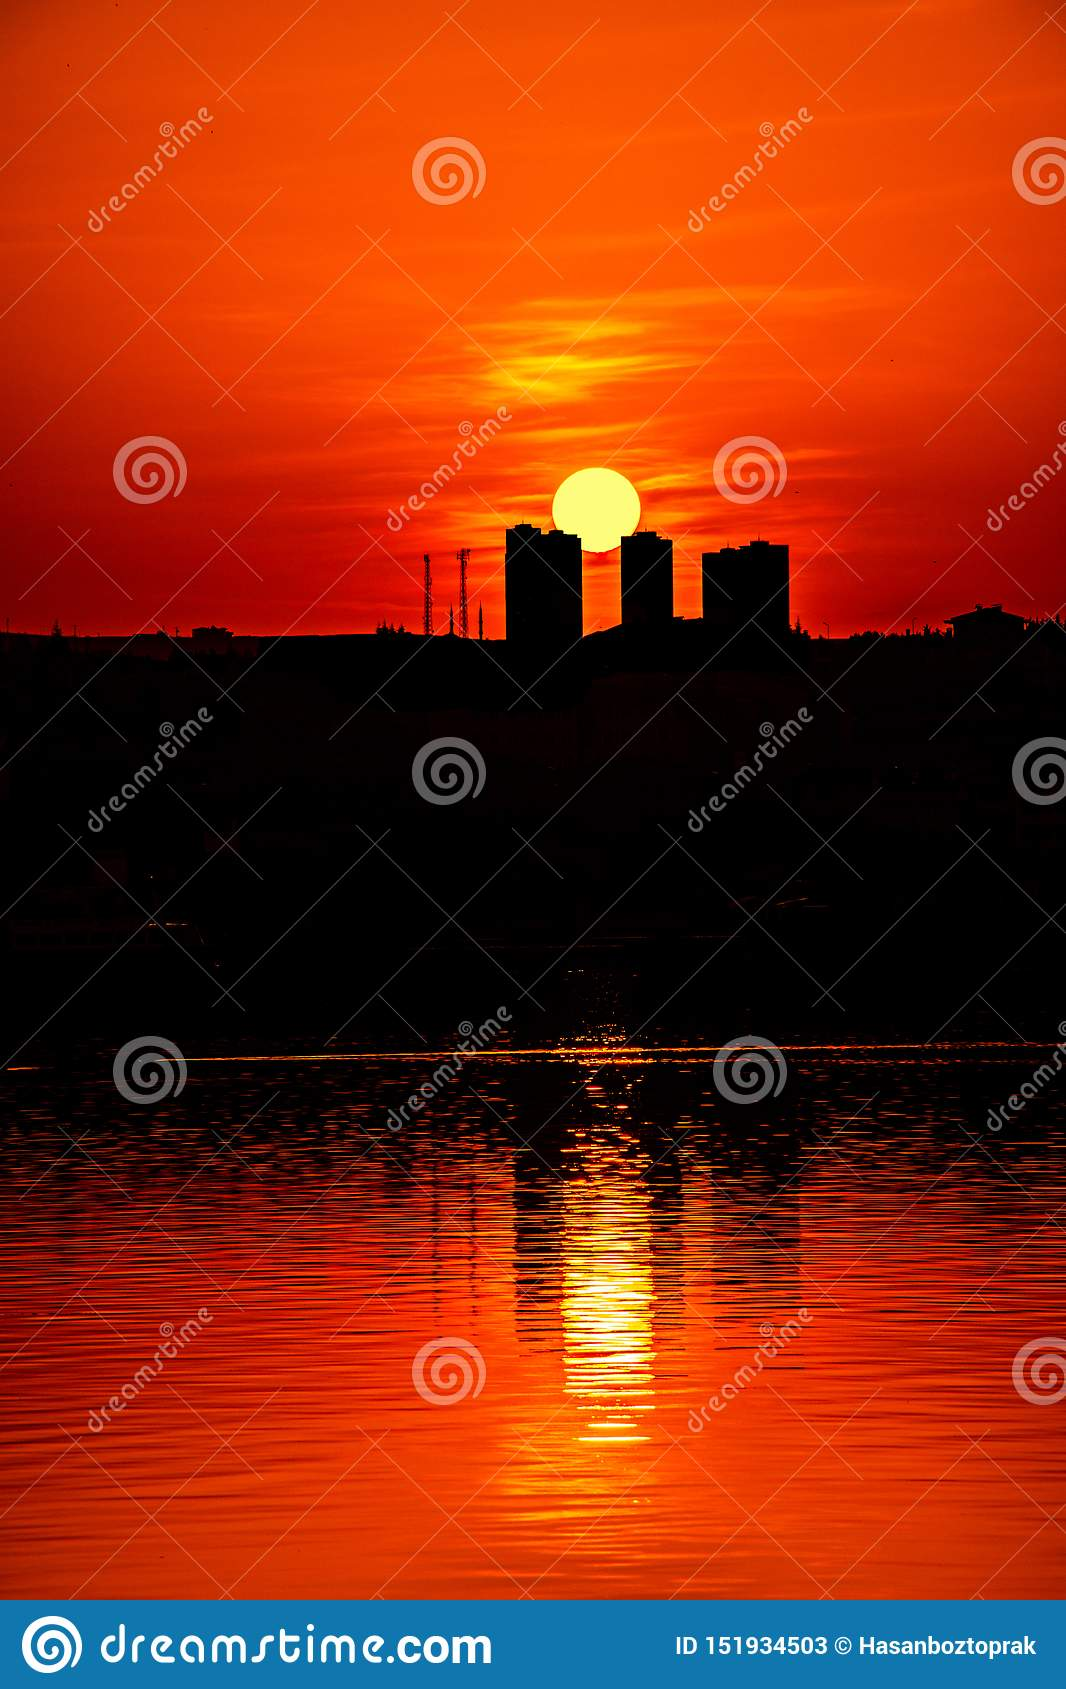 Fishing Boat and Sunset in Ankara Turkey